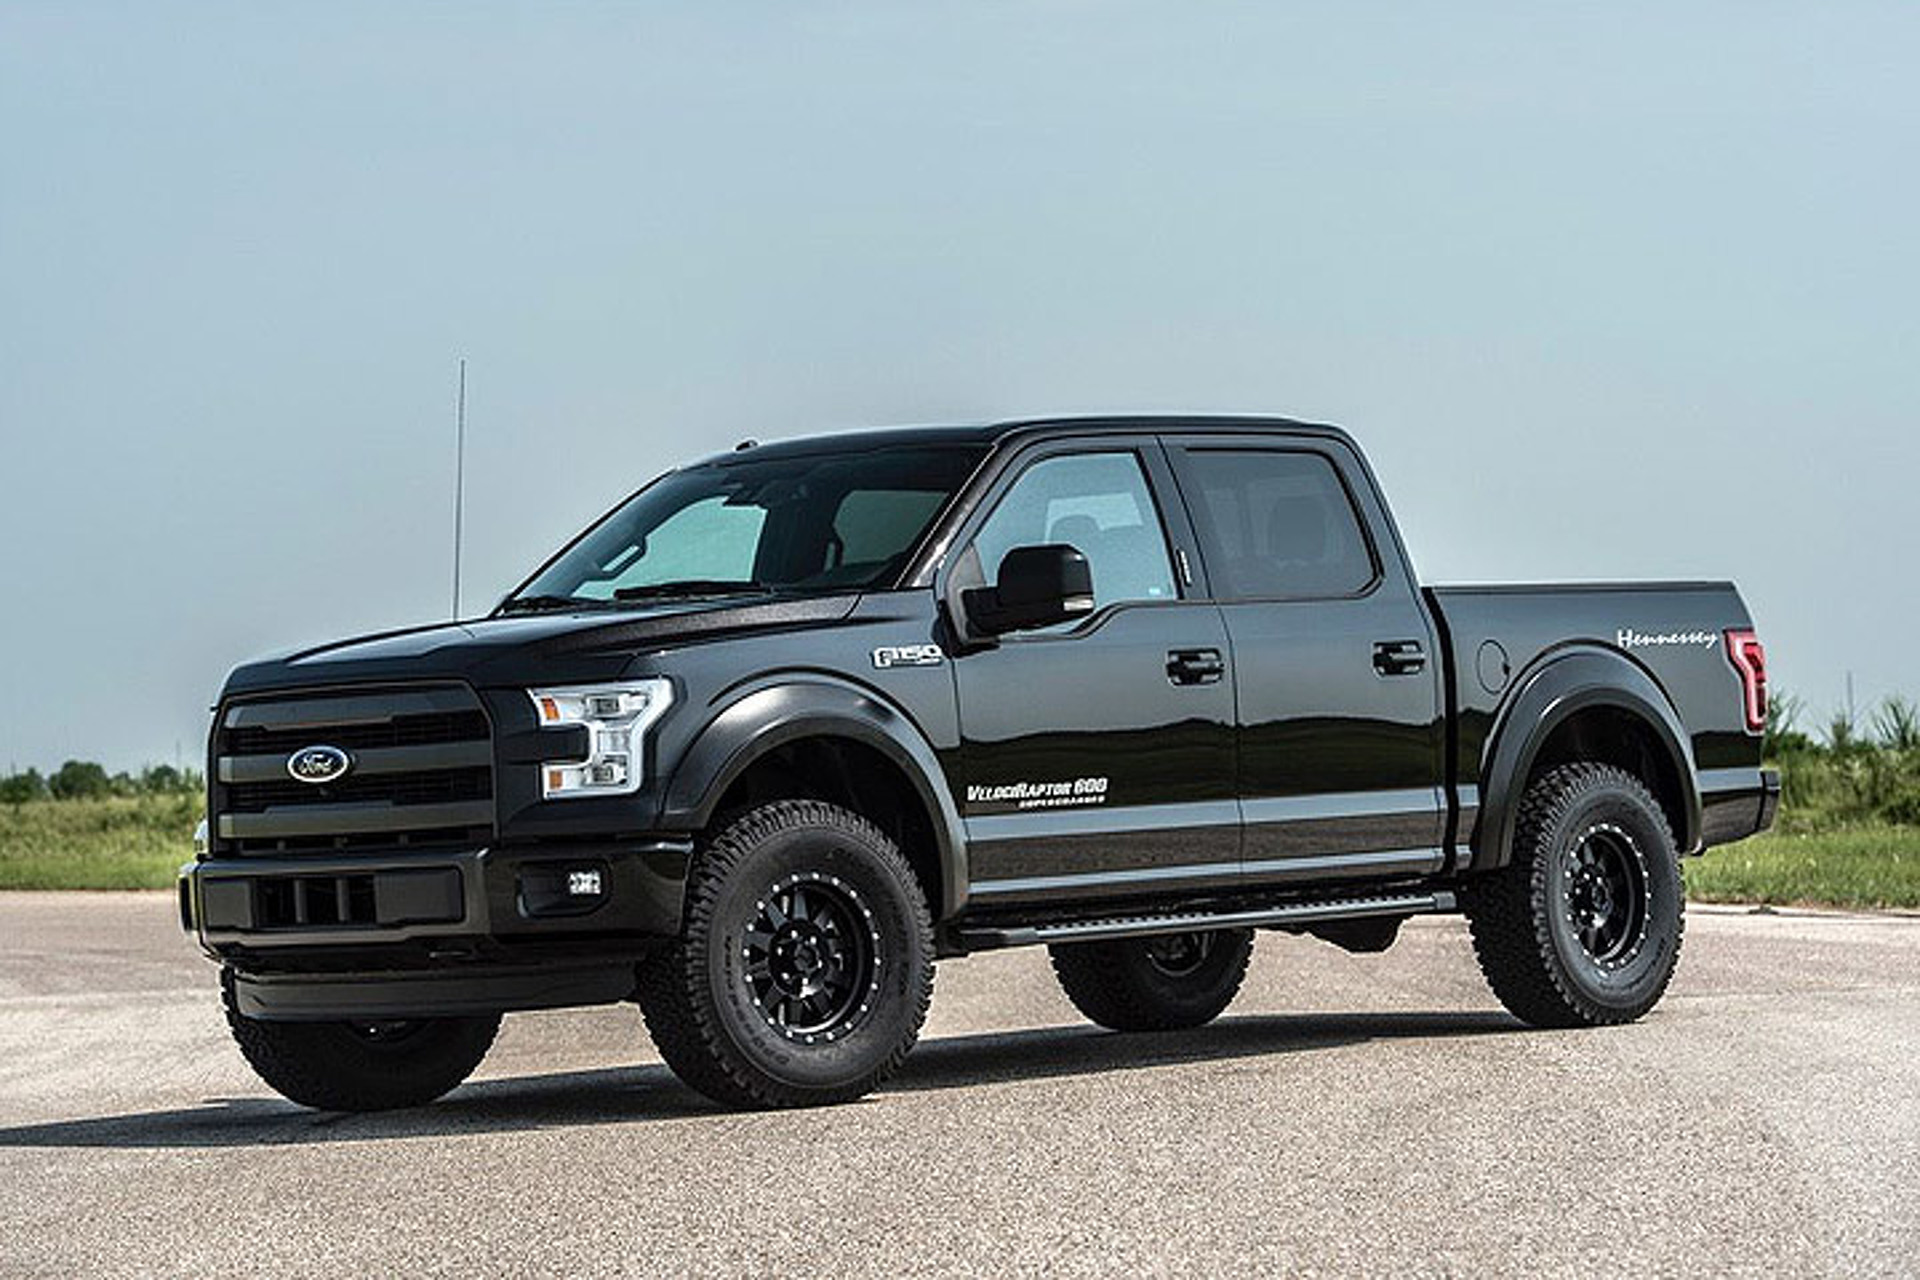 images hd f ford svt raptor presentation cars wallpaper